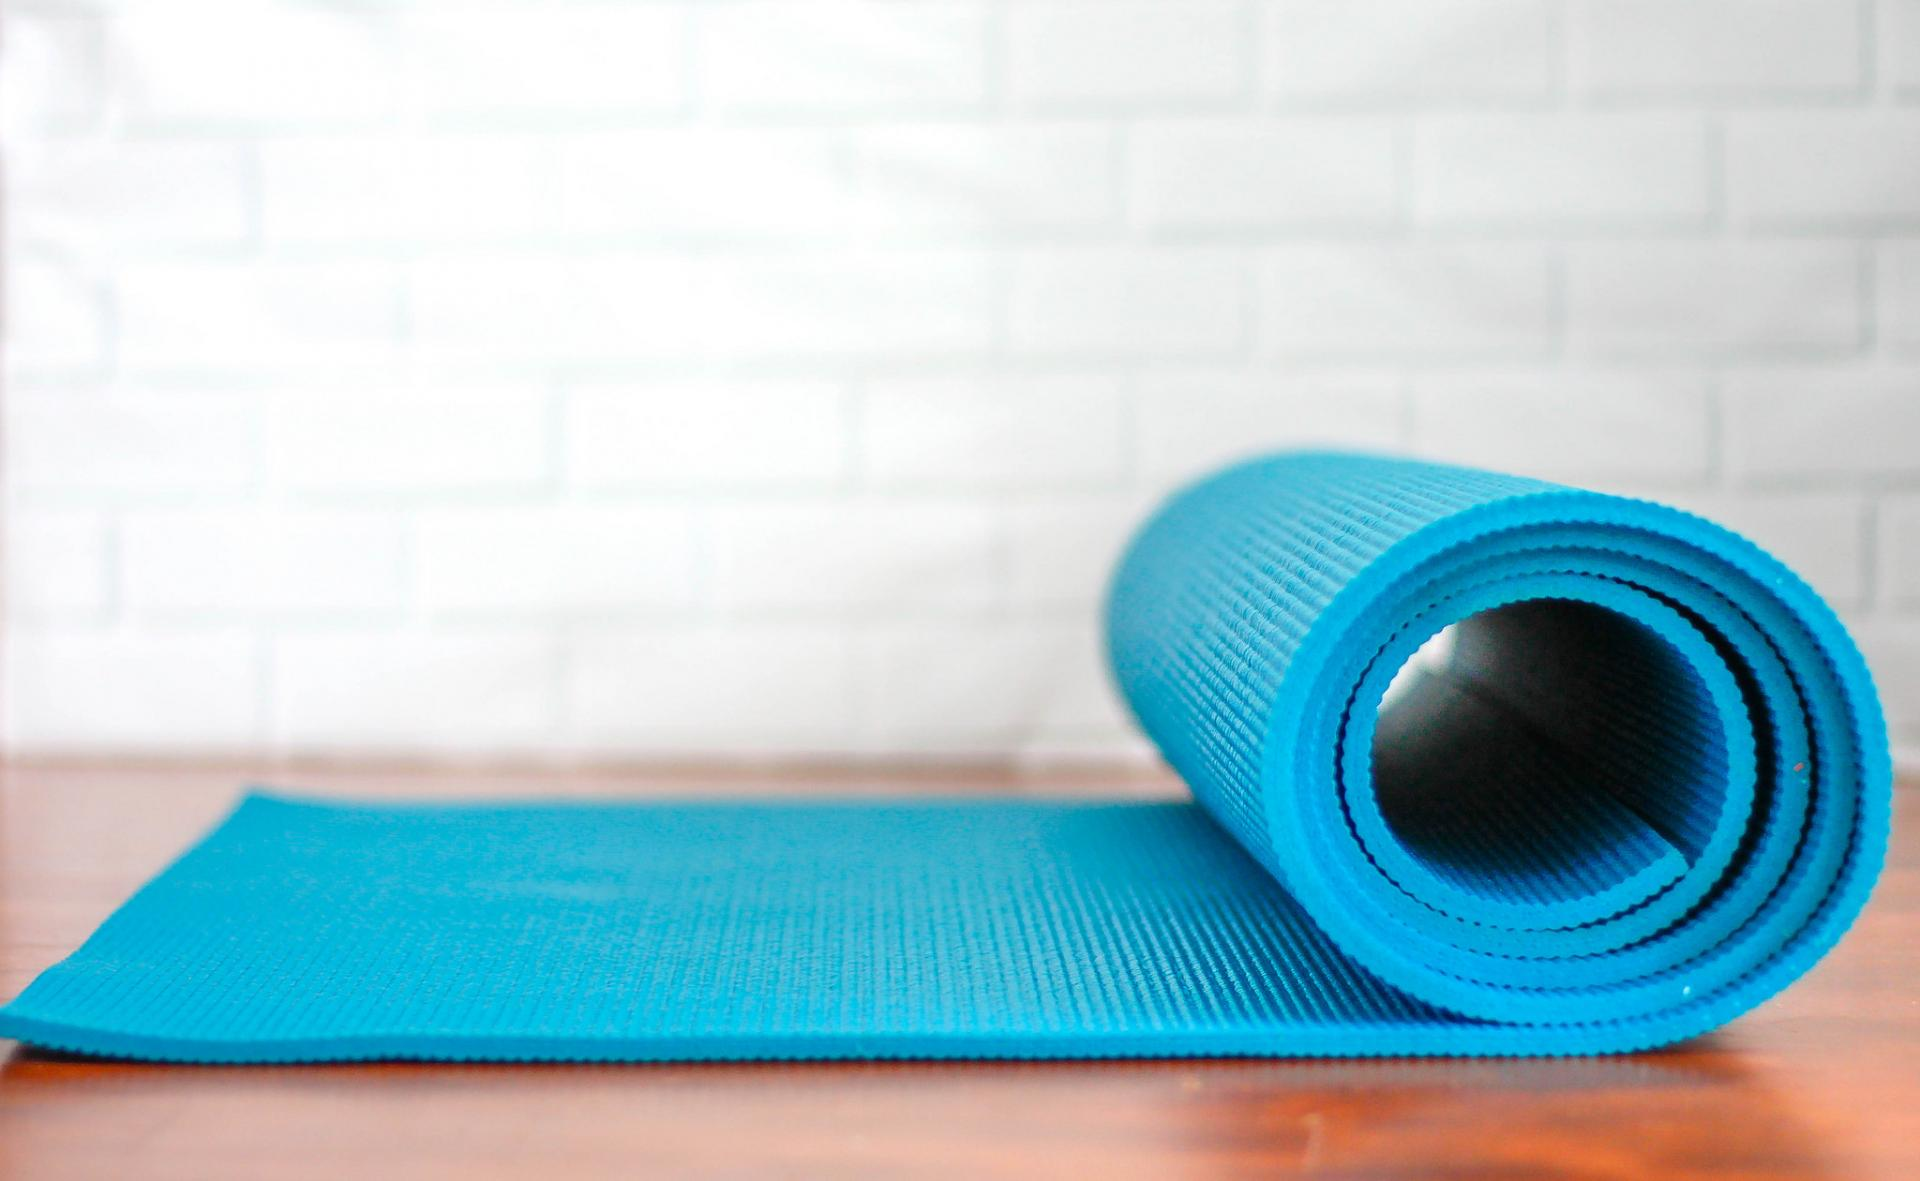 Non Toxic Yoga Mats Don T Inhale Harmful Chemicals